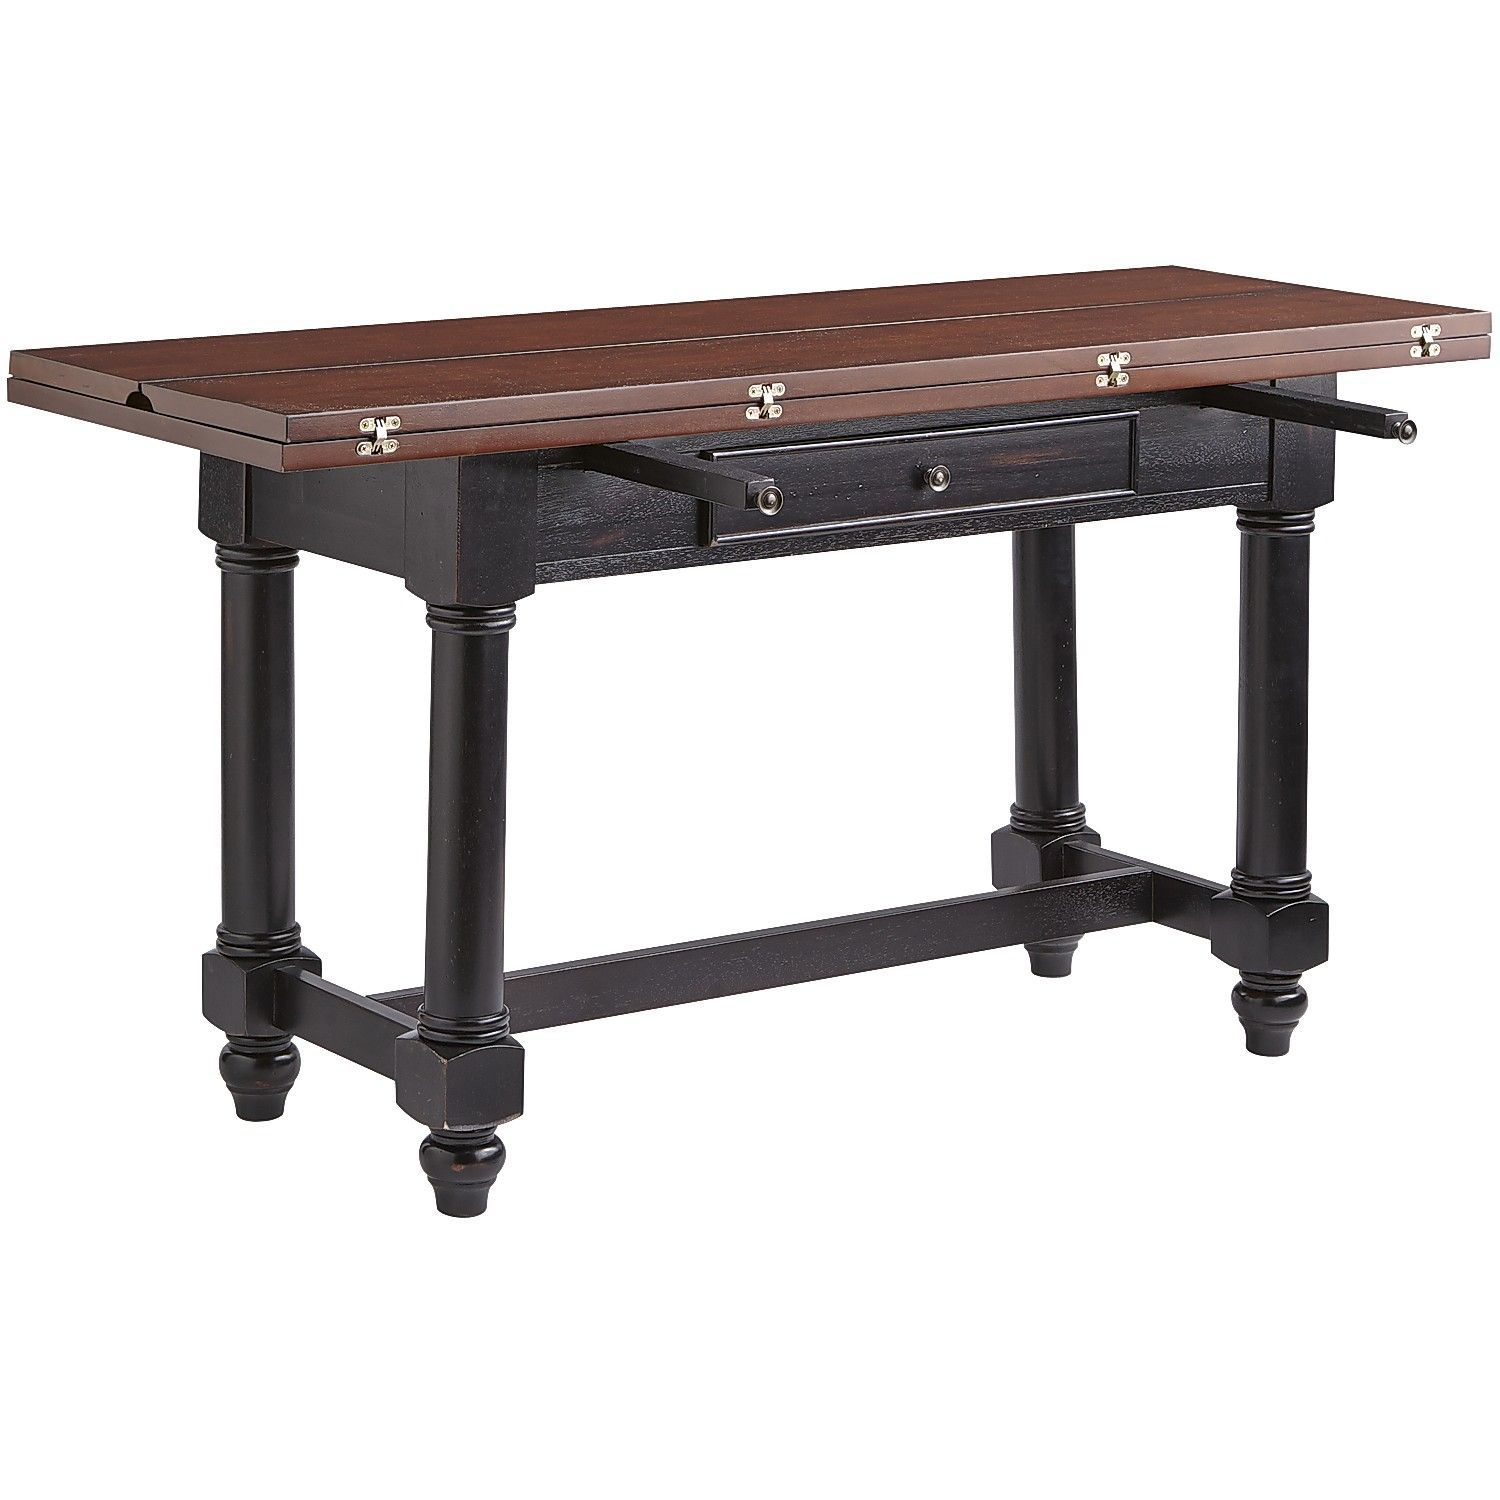 Blake Drop Leaf Table Pier 1 Leaves Fold Over Top With Support